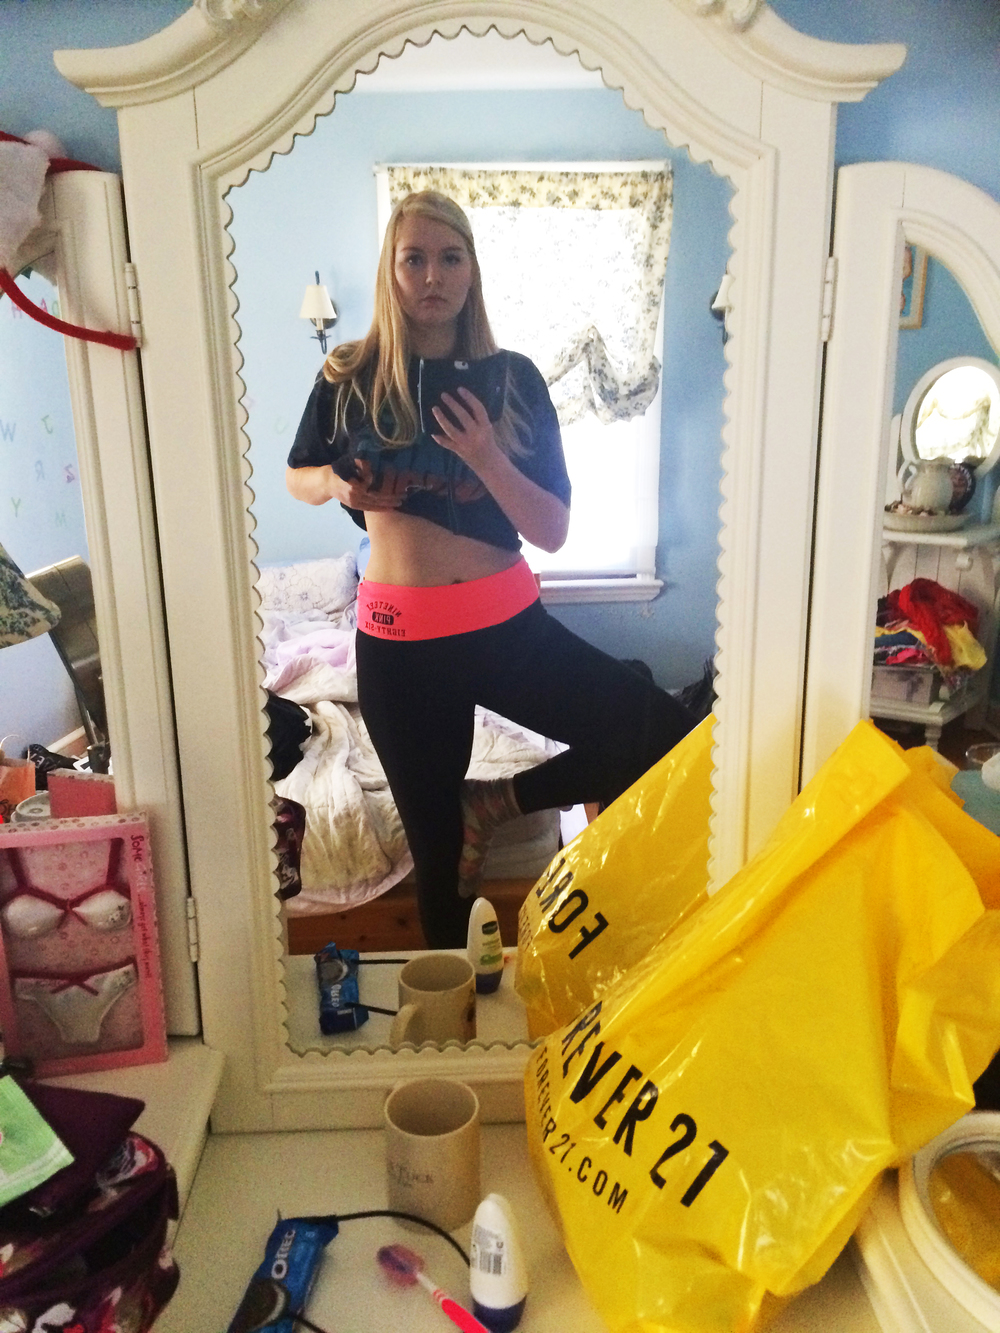 Loving my new yoga pants from VS